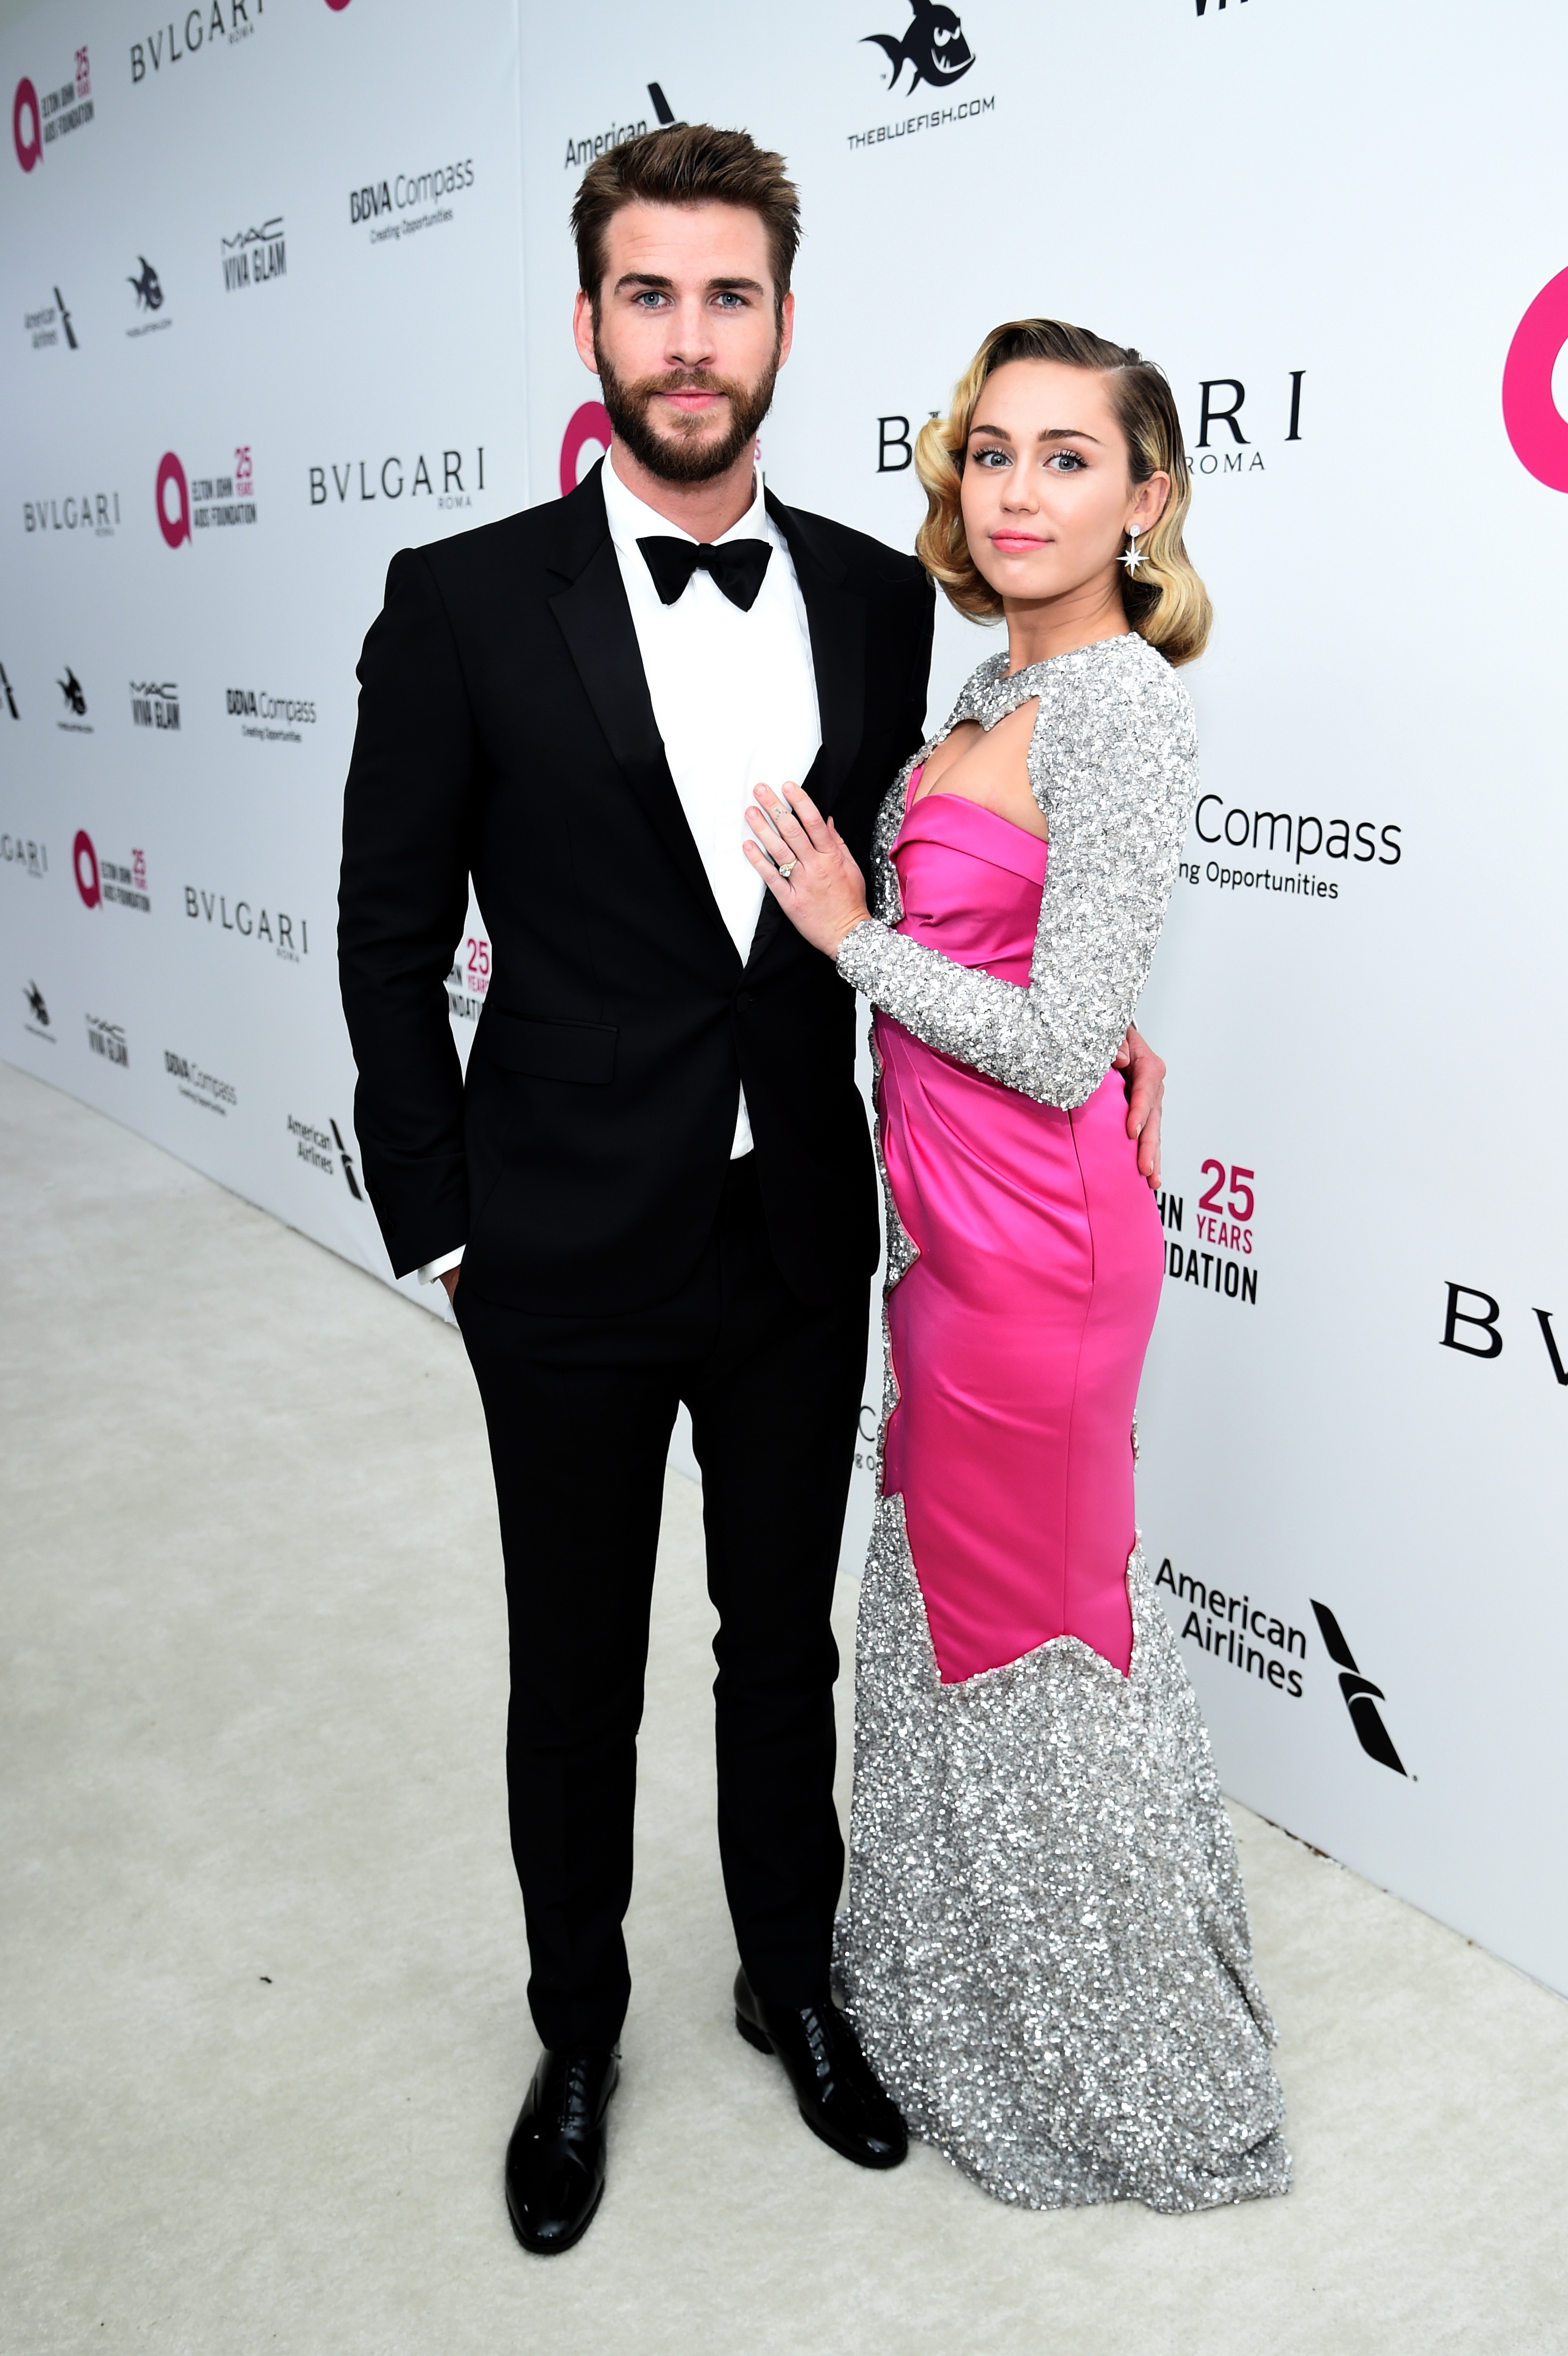 <p>After the Oscars is when the real fashion gets started. For those who didn't score an invite to this year's ceremony, there was still time to shine in the style stakes at the post- parties.</p> <p>From the annual <em>Vanity Fair</em> After-Party held at the Sunset Tower in Hollywood, to Elton John's AIDS fundraising bash, there was no shortage of sartorial standouts.</p> <p>And what could be better than one style star? Two of course.</p> <p>Australian power couple Lachlan and Sarah Murdoch cut a stylish figure on <em>Vanity Fair</em>'s red carpet, whilst Miley Cyrus and Liam Hemsworth cosied up next to Elton John and Caitlyn Jenner.</p> <p>Click through to see what the stars wore to party here.</p>